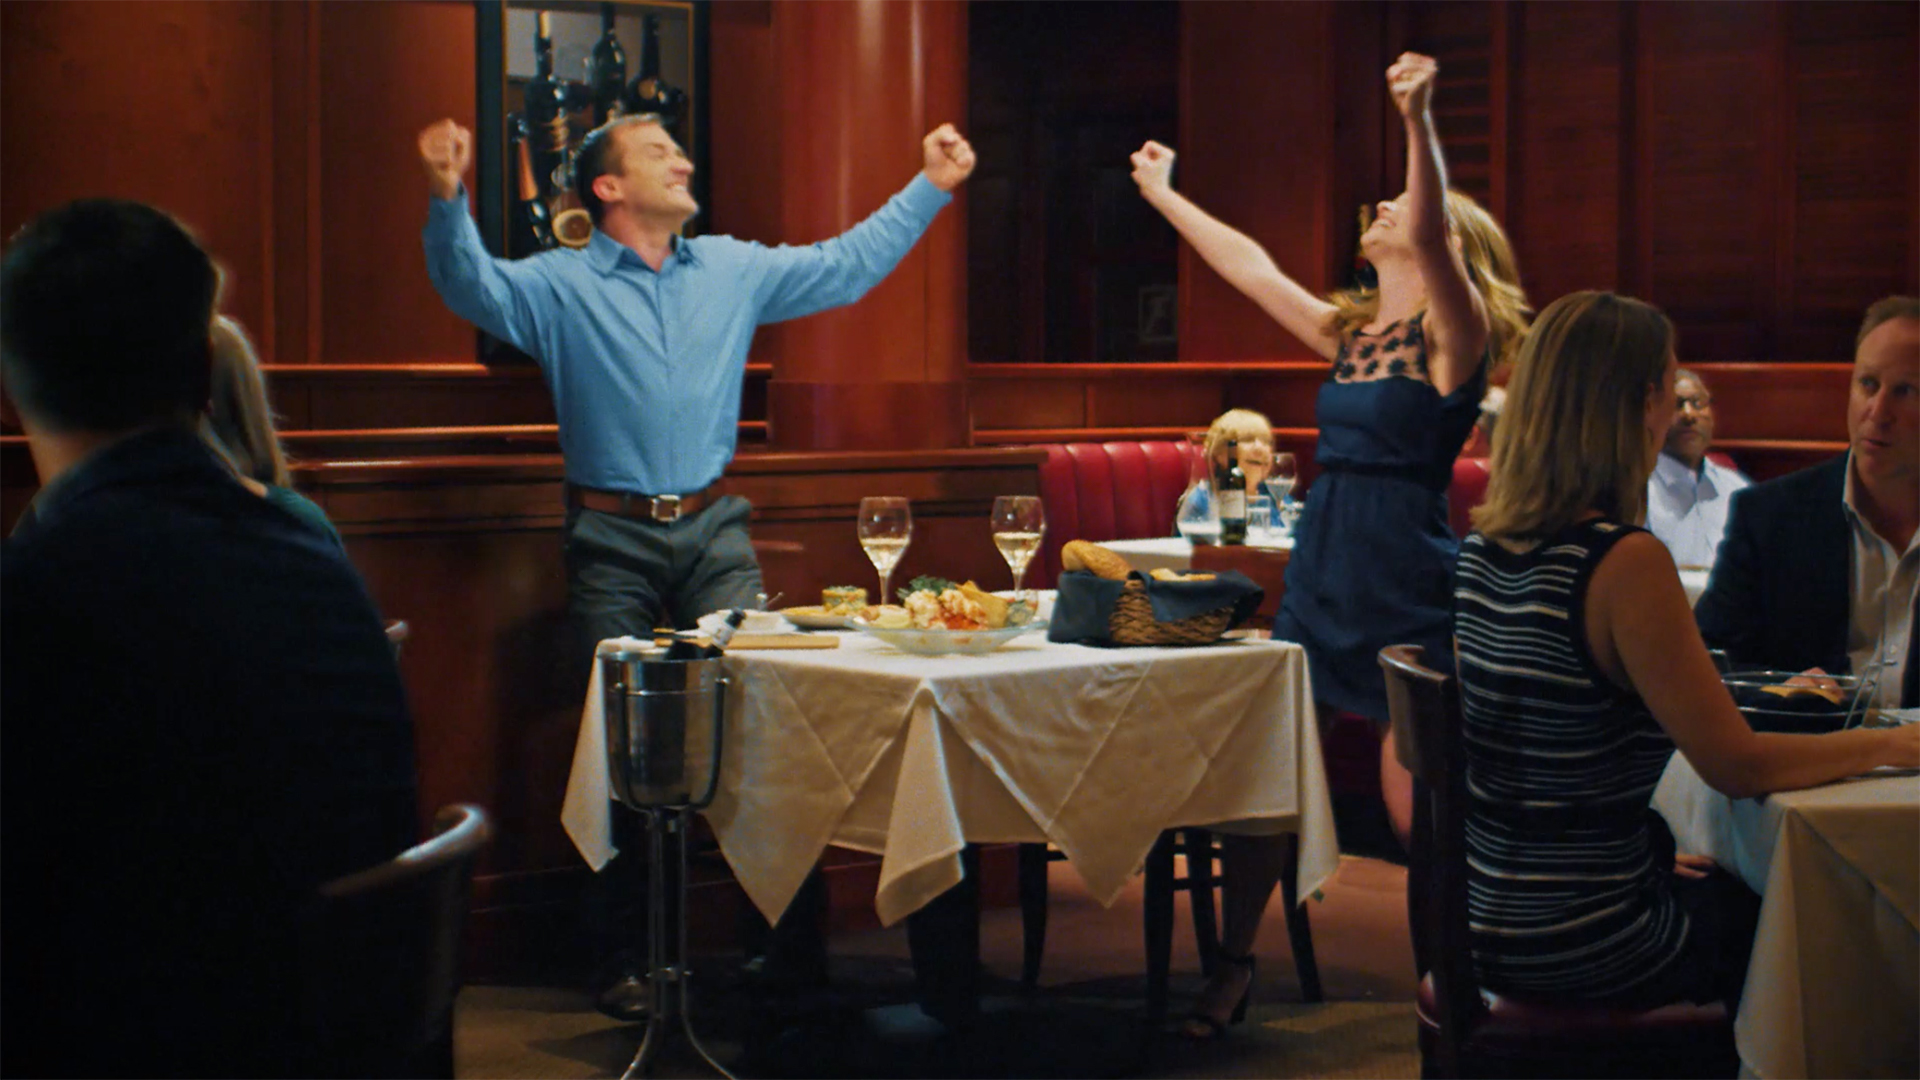 Young couple standing up and celebrating at a fancy restaurant